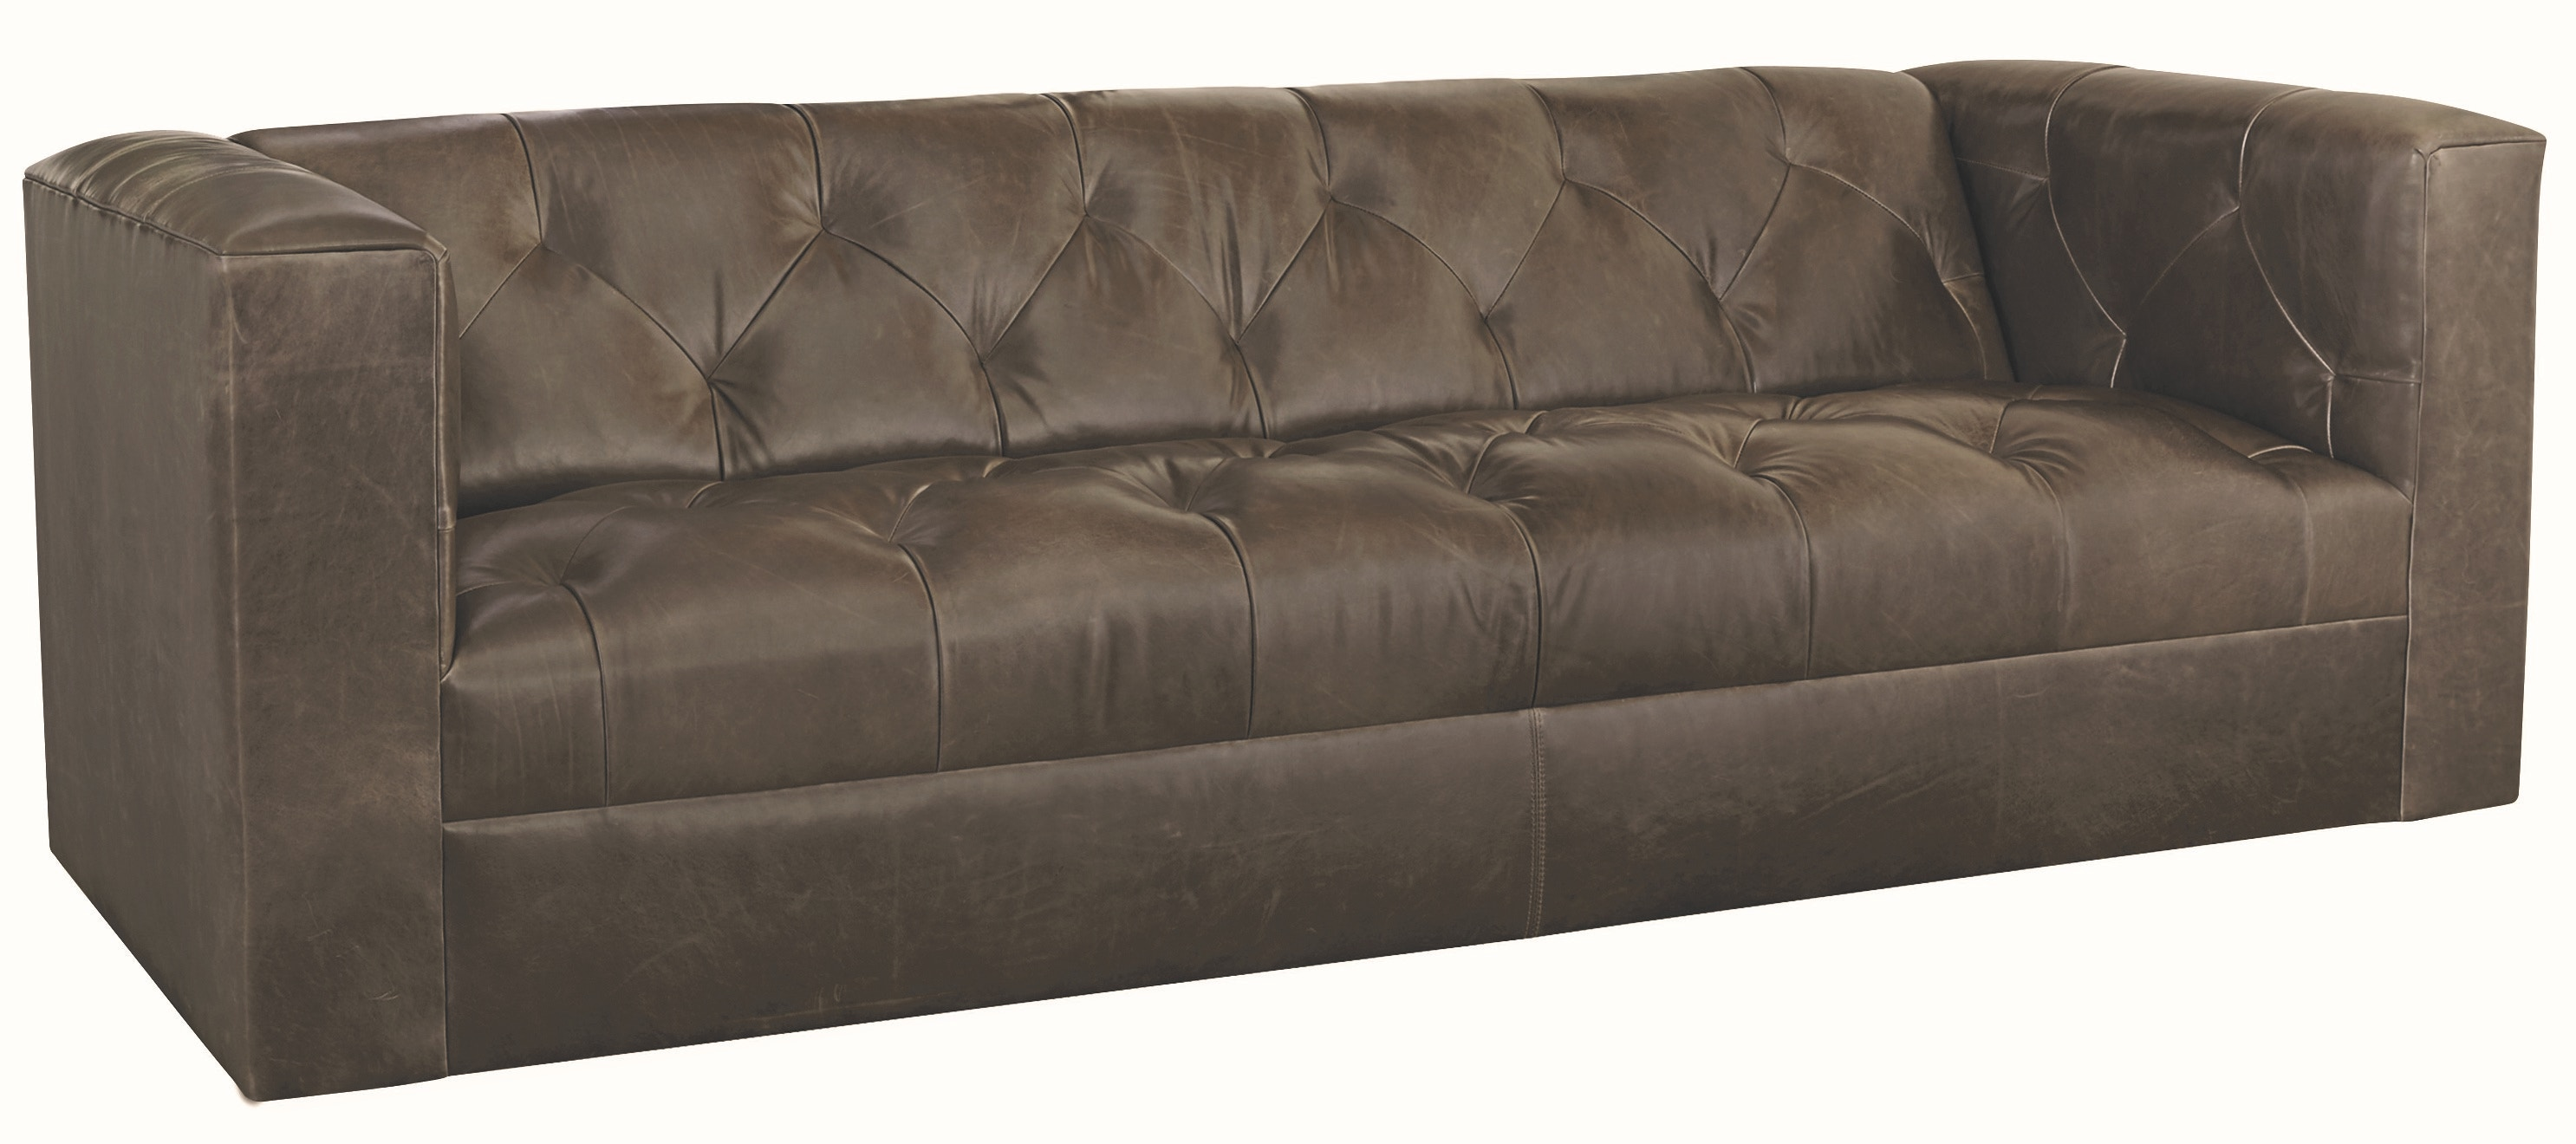 Lee Industries Leather Sofa L3992 03